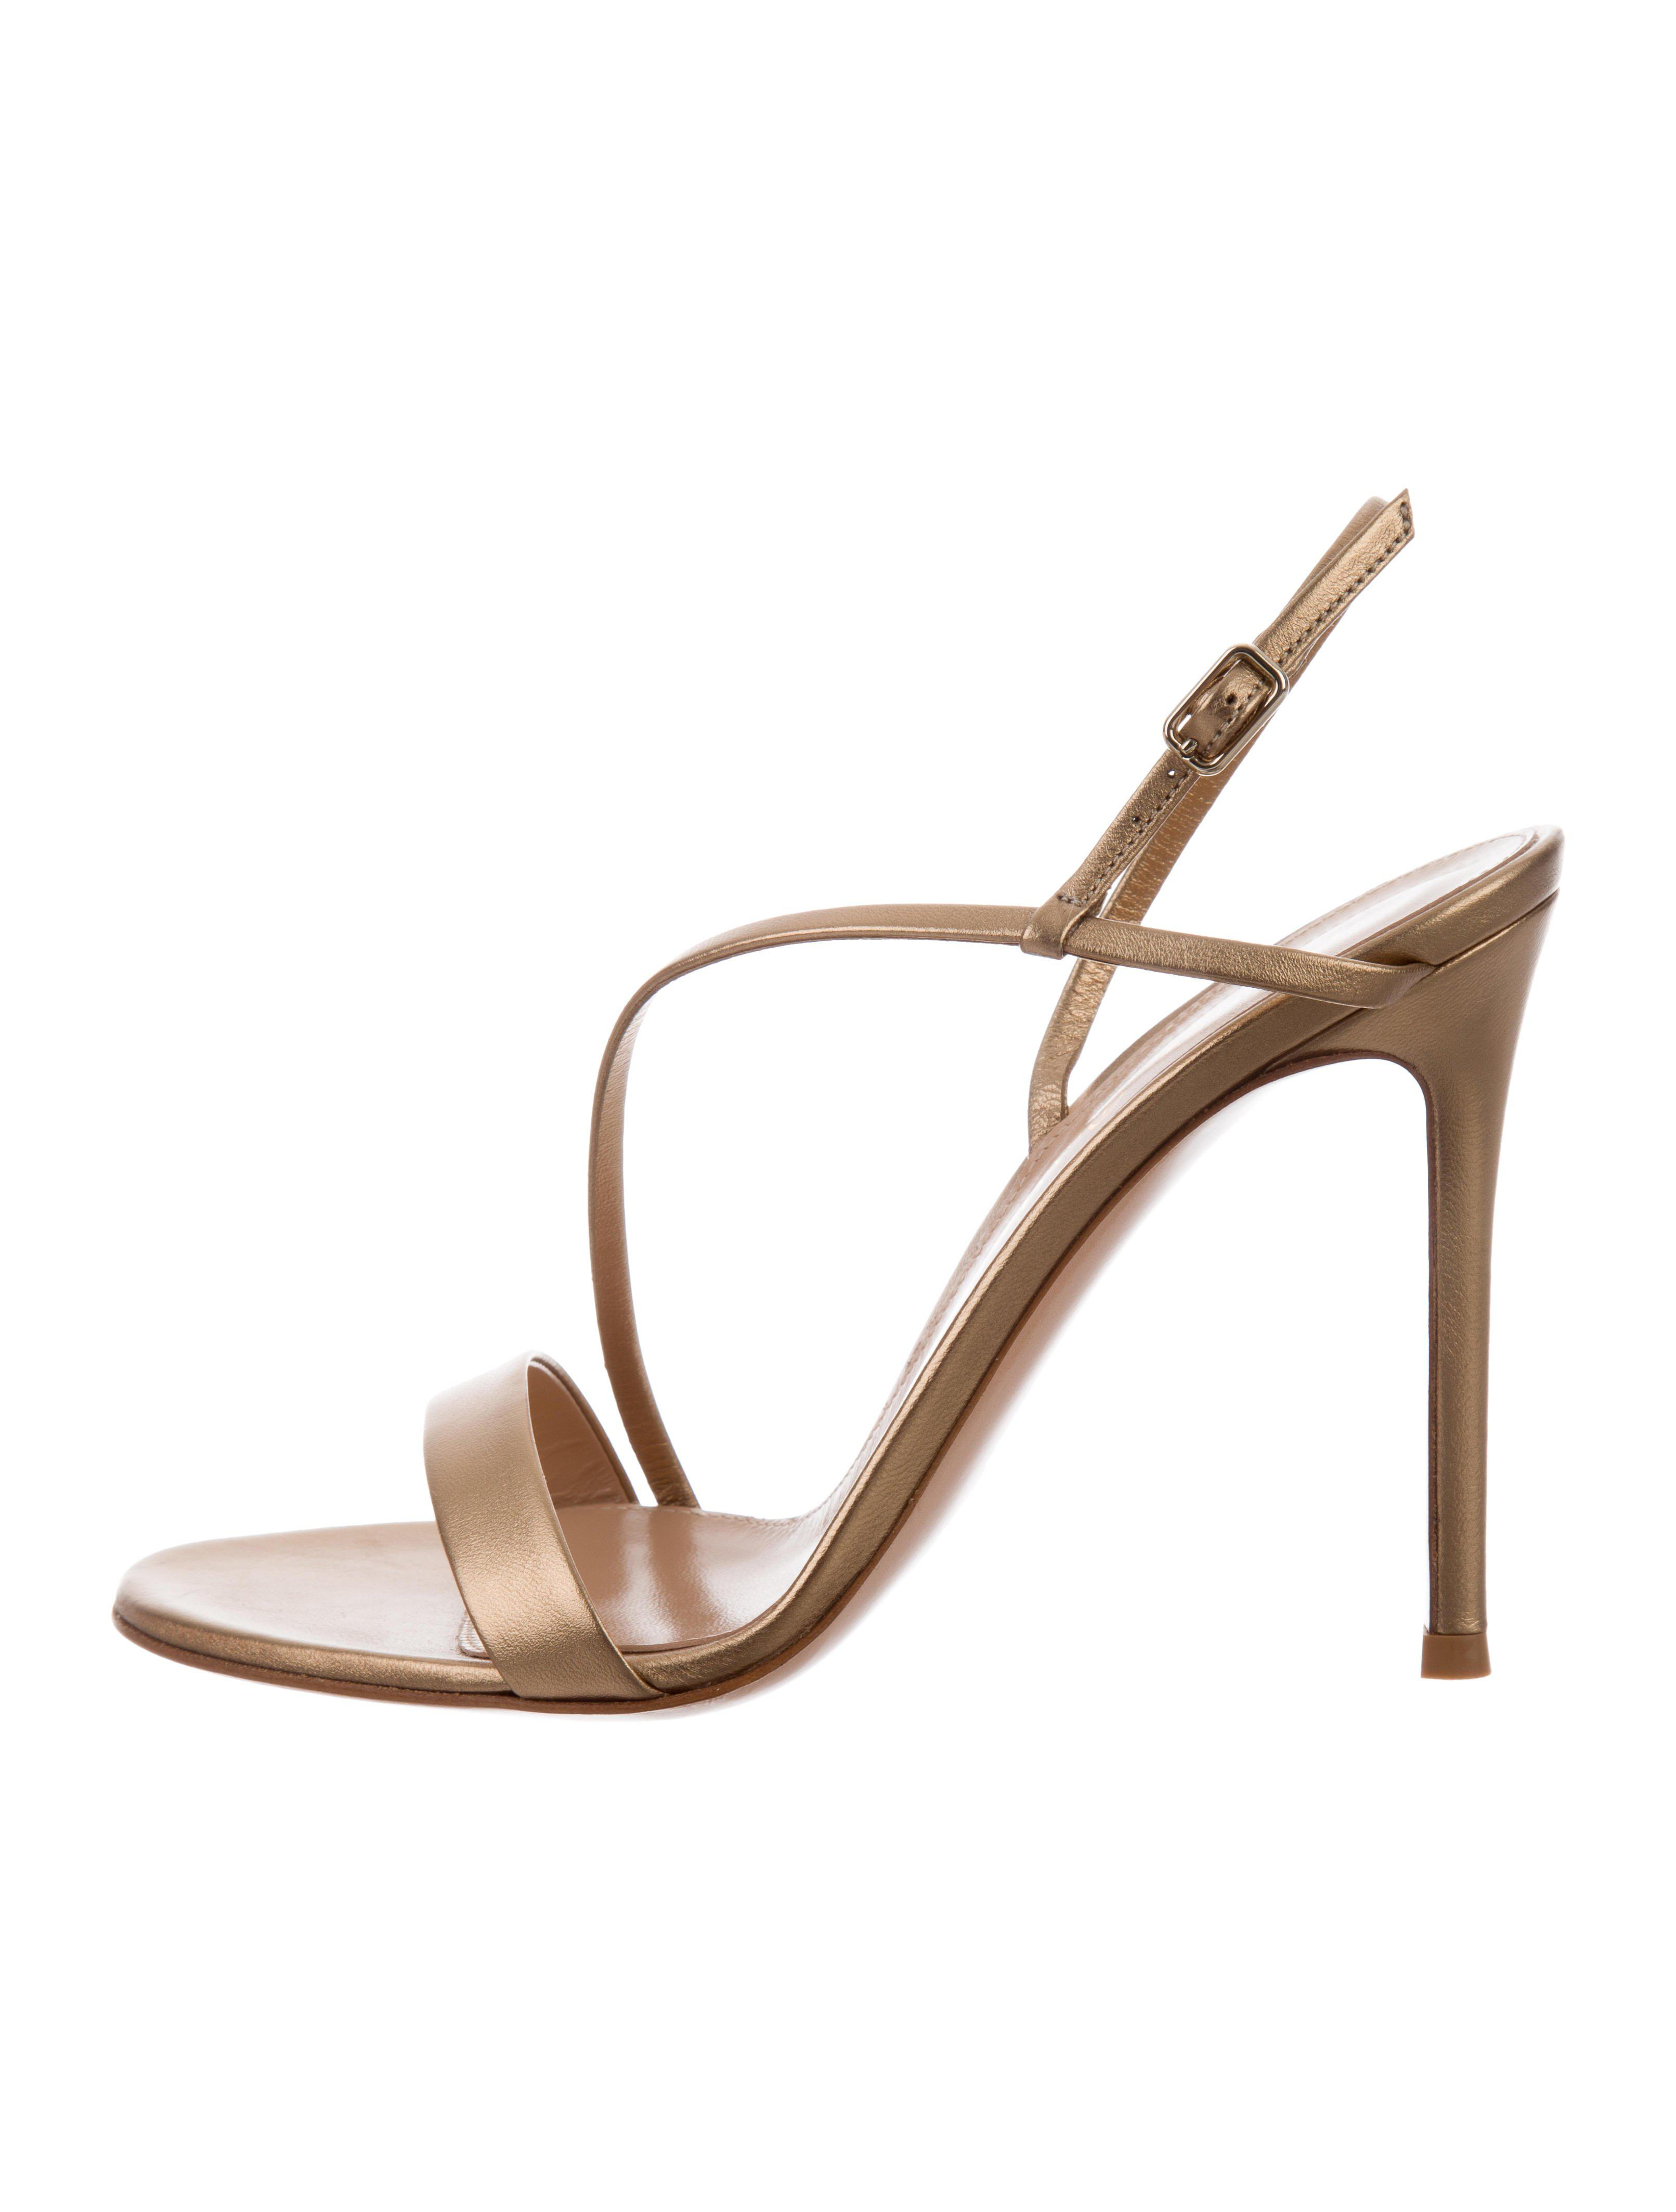 largest supplier Gianvito Rossi Metallic Satin-Trimmed Sandals w/ Tags discount classic Pj0cpJLiUF